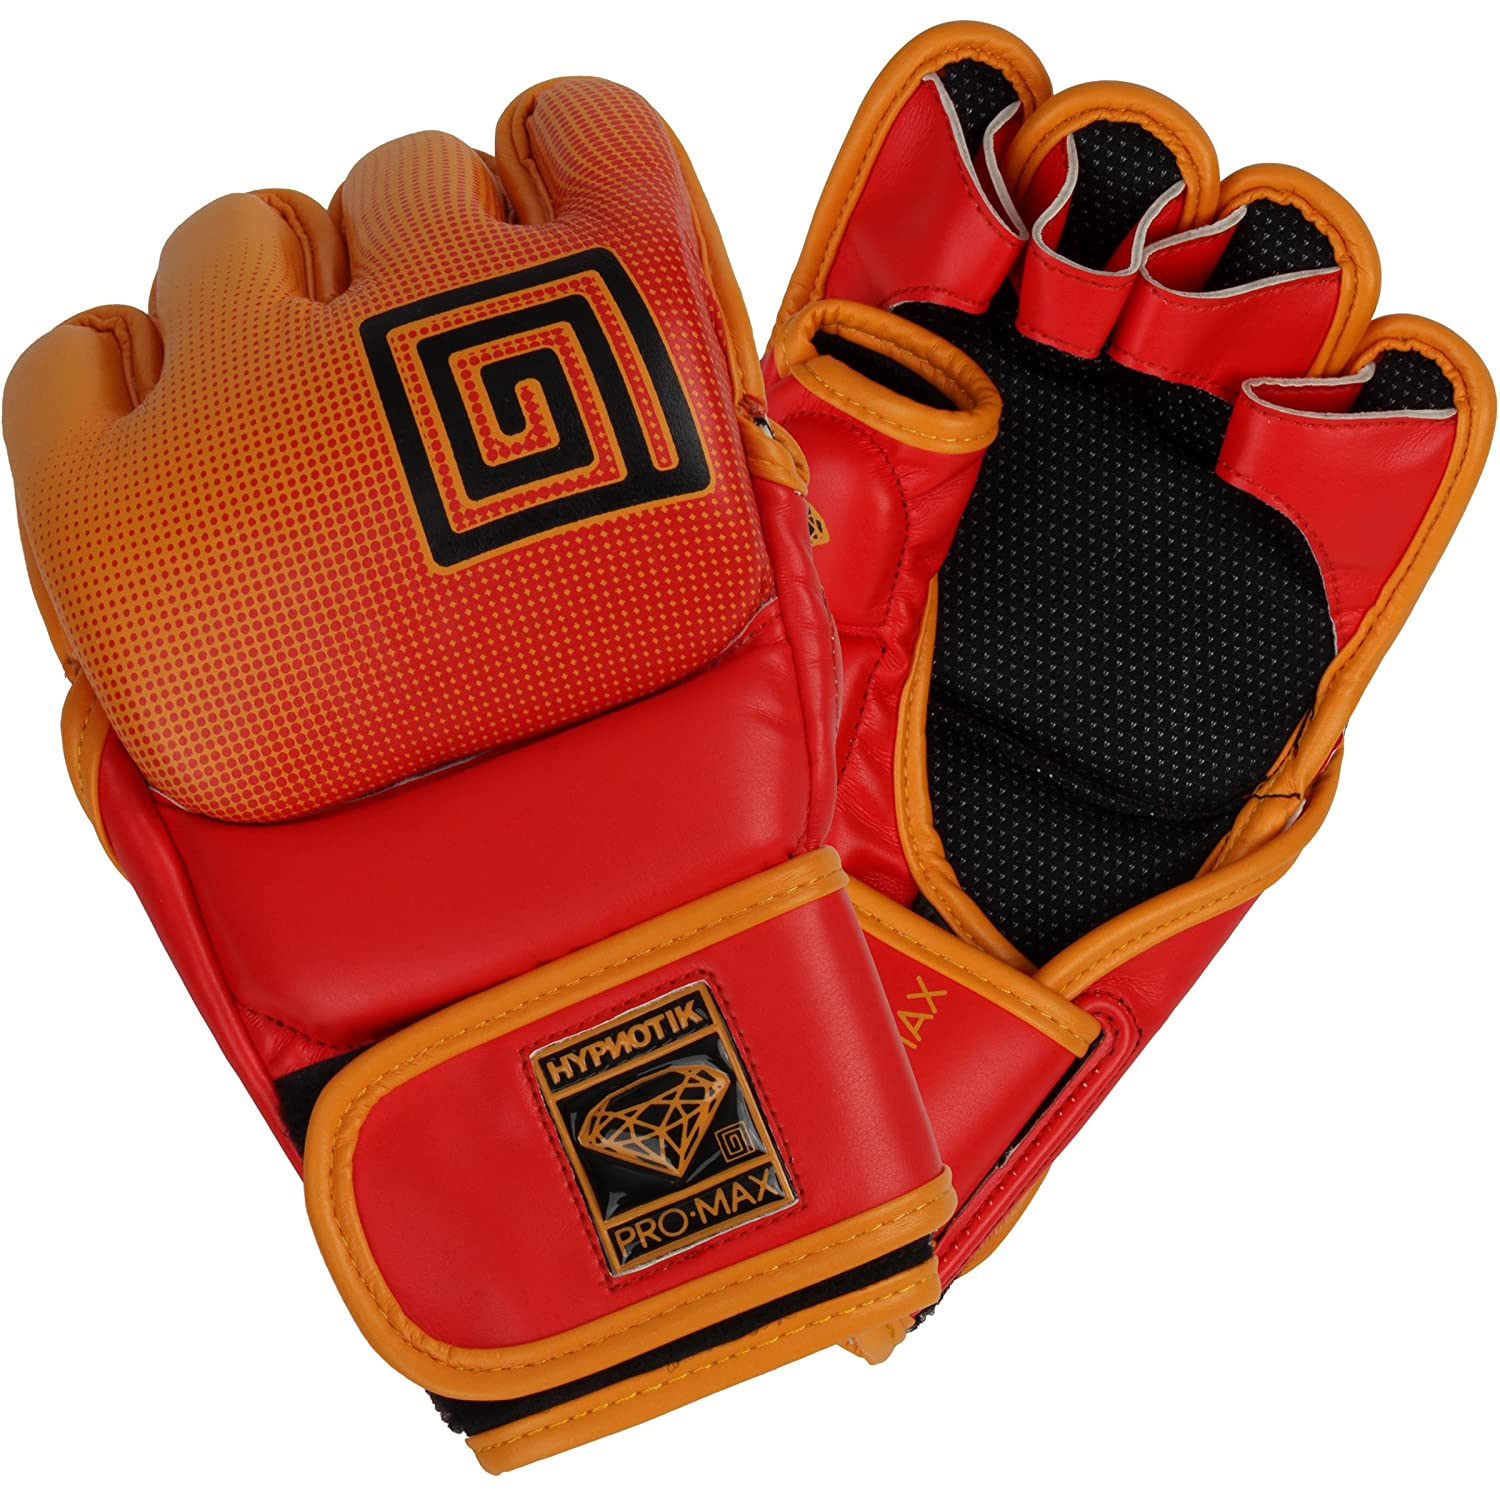 Hypnotik Promax MMAグローブ B077RHZJ1R Orange Fluorescent Large